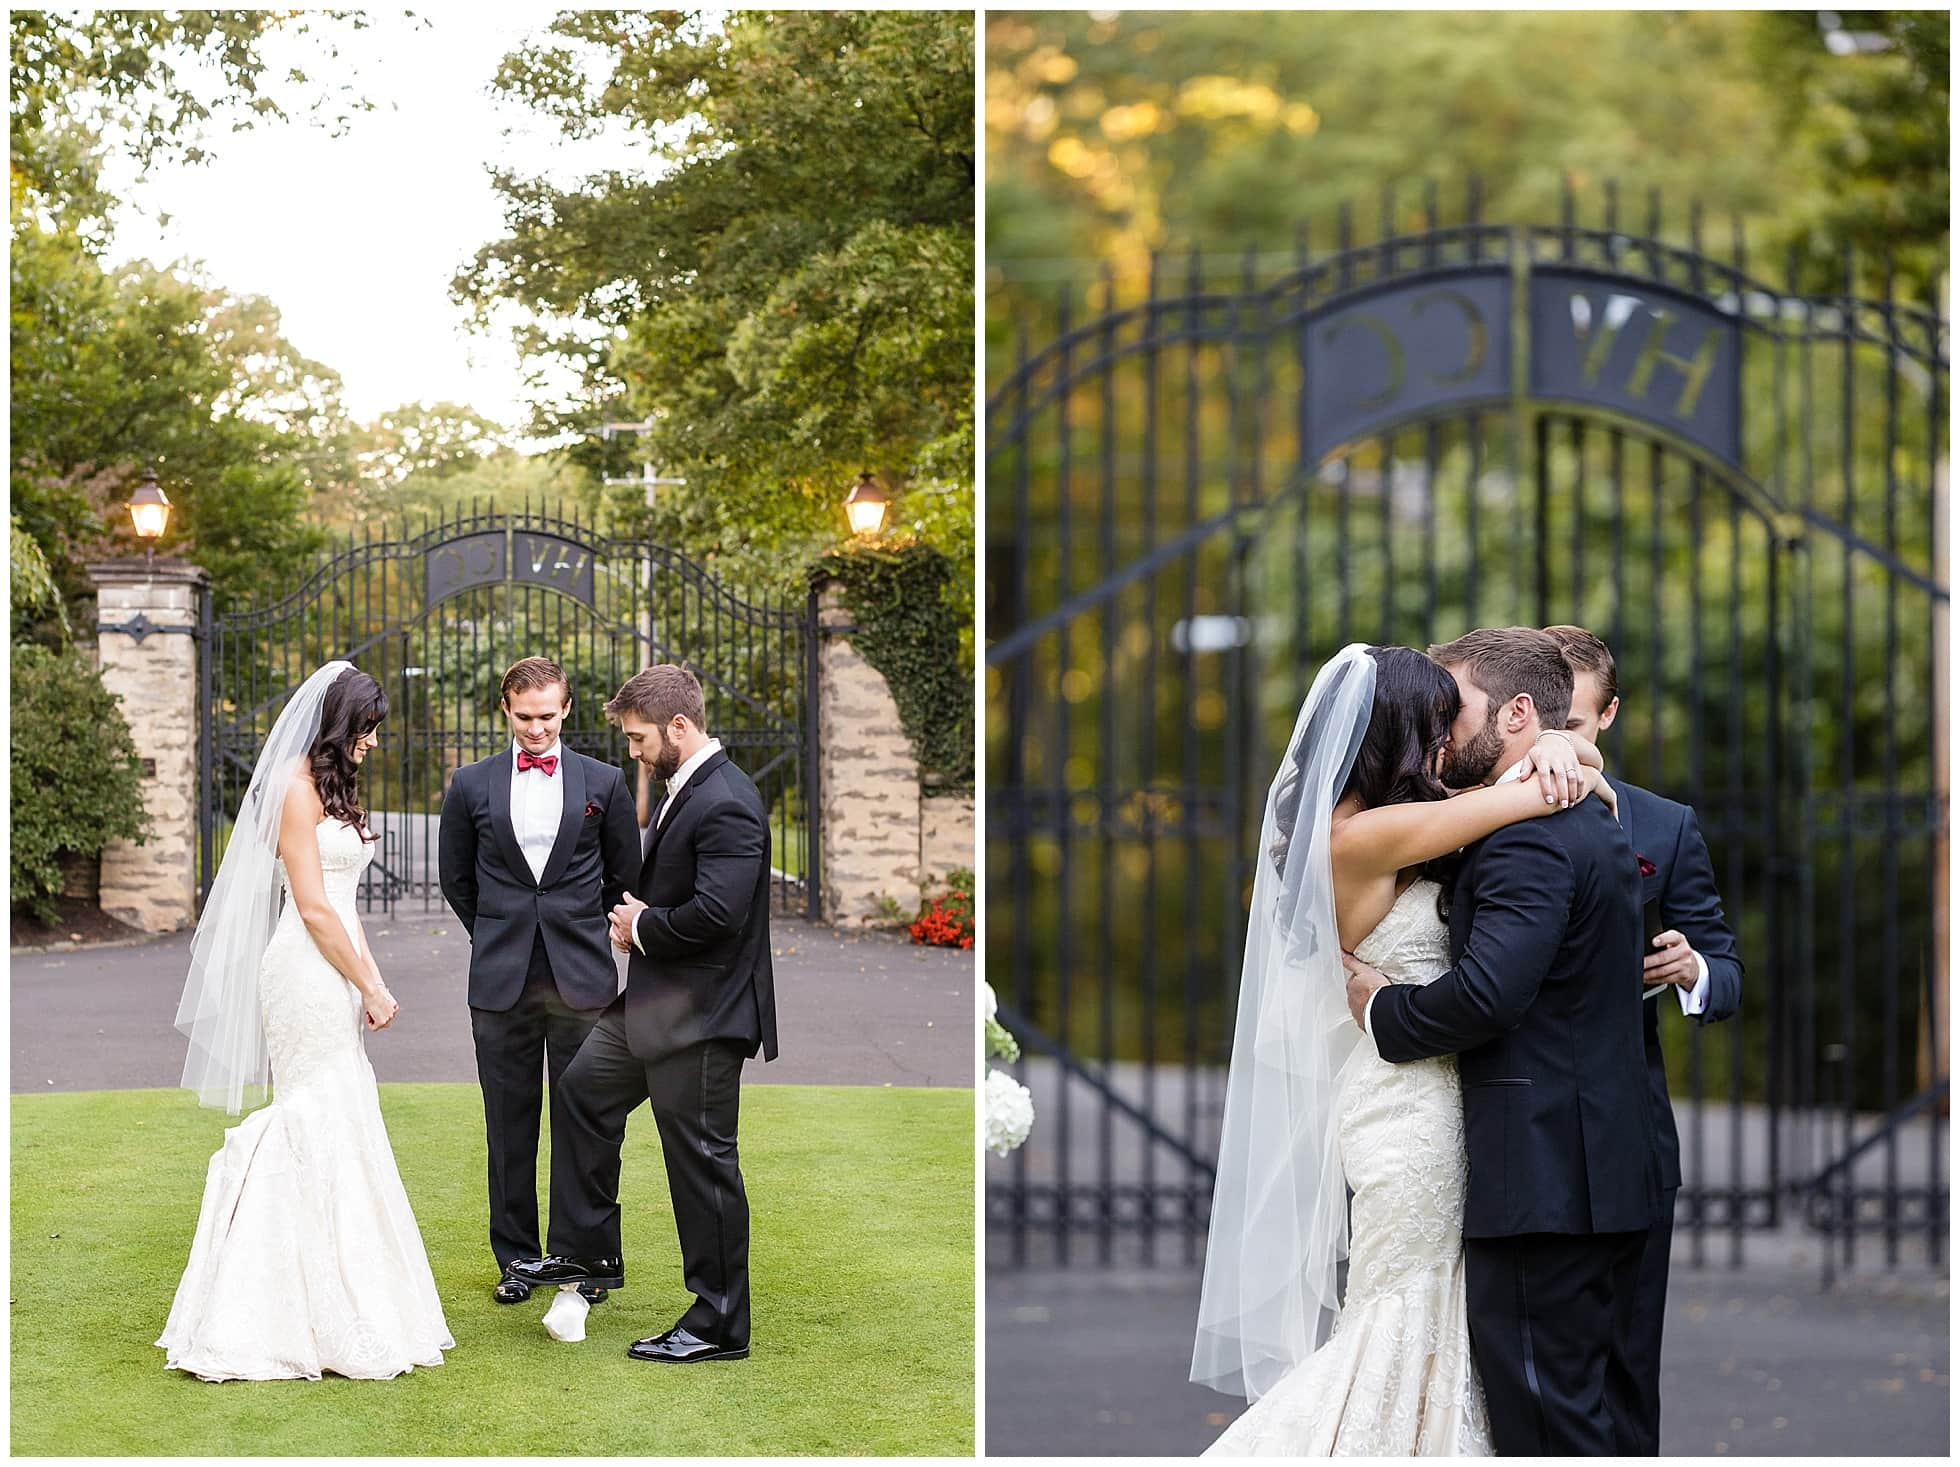 Huntingdon Valley Country Club Wedding Photos Outdoors Love This Blended Incorporating Some Jewish Traditions